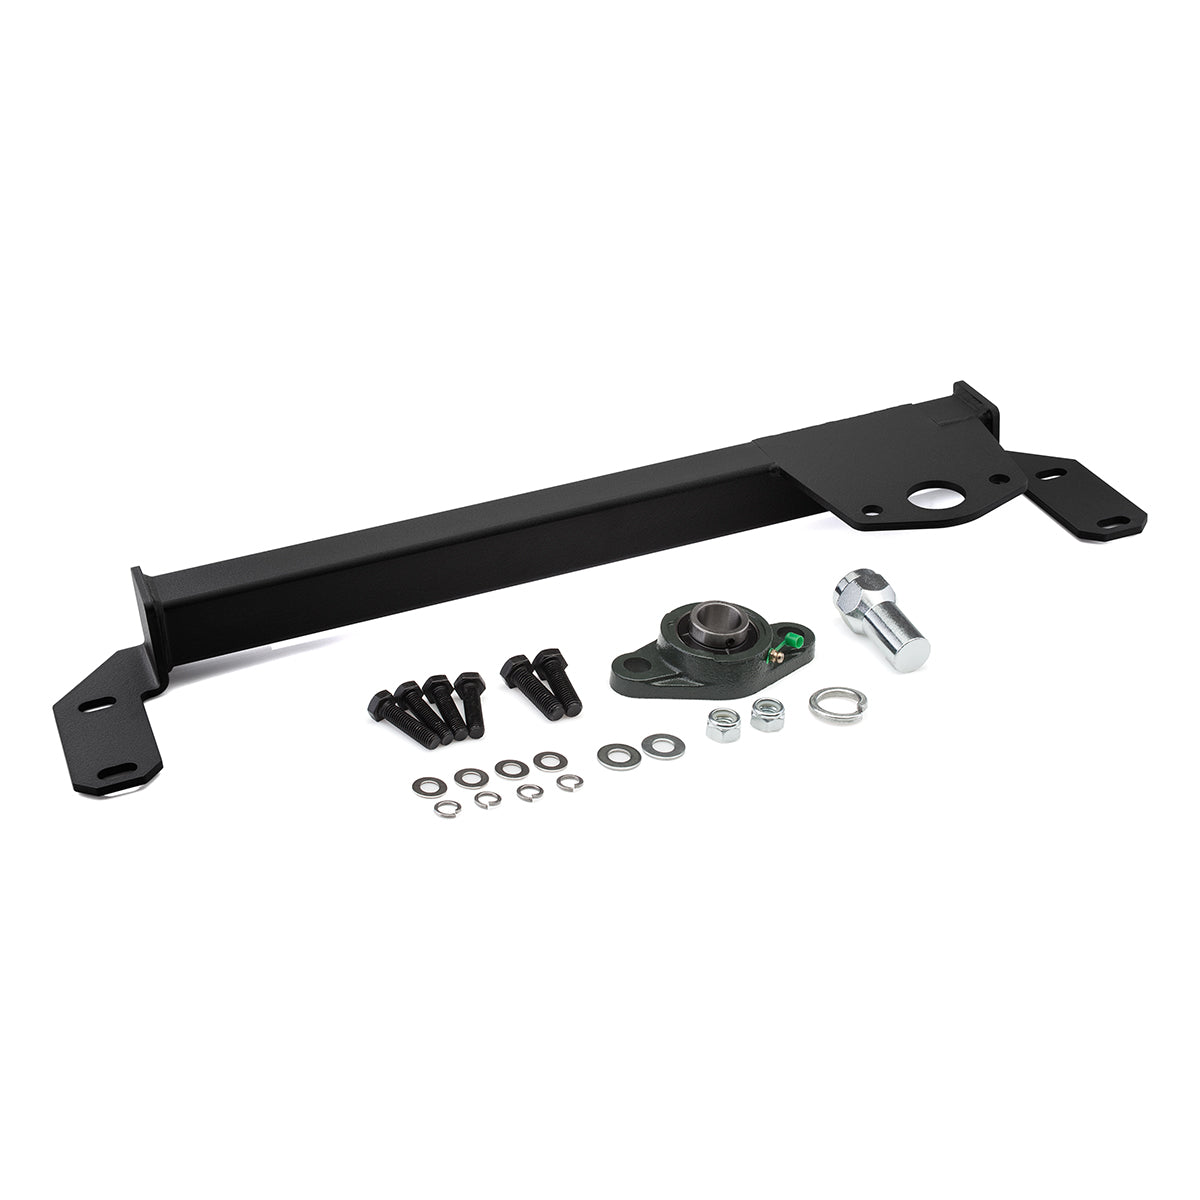 1994-2001 Dodge Ram 1500 4WD Front Lift Kit with Steering Stabilizer Bar